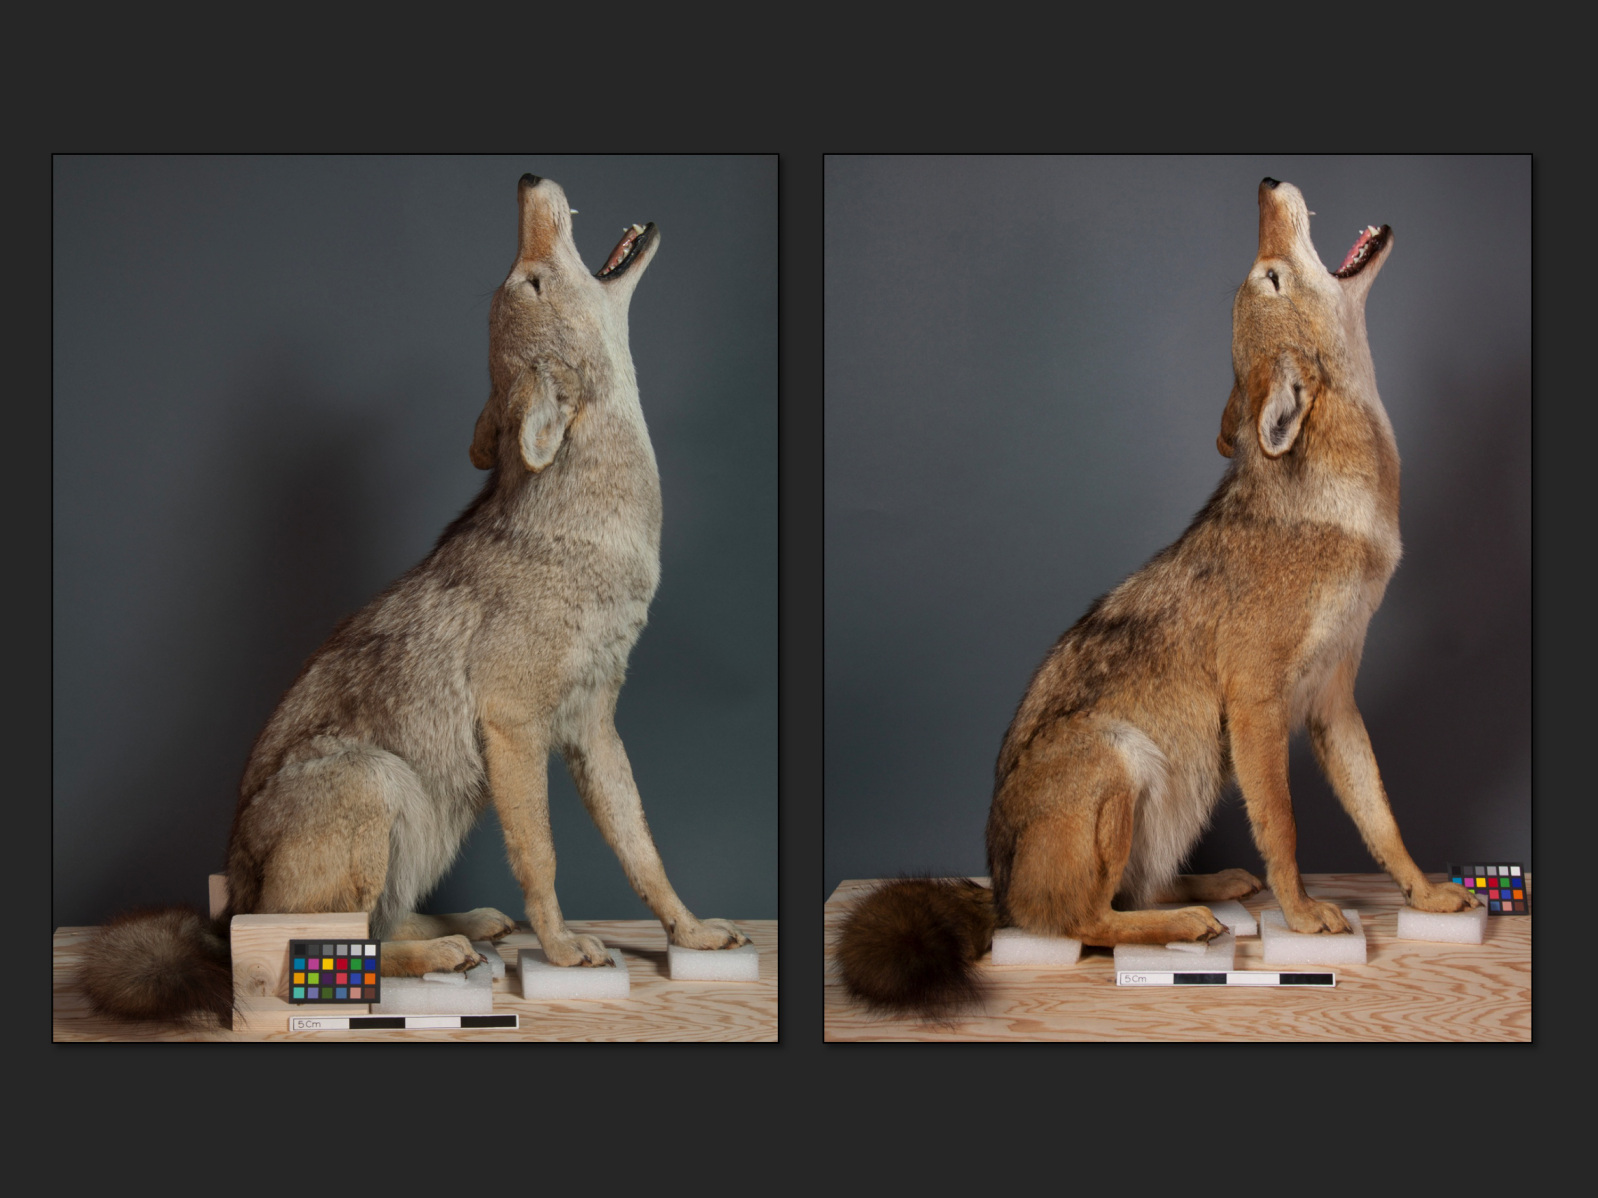 Coyote, before and after recoloring. Credit: ©Julia Sybalsky and Bethany Palumbo